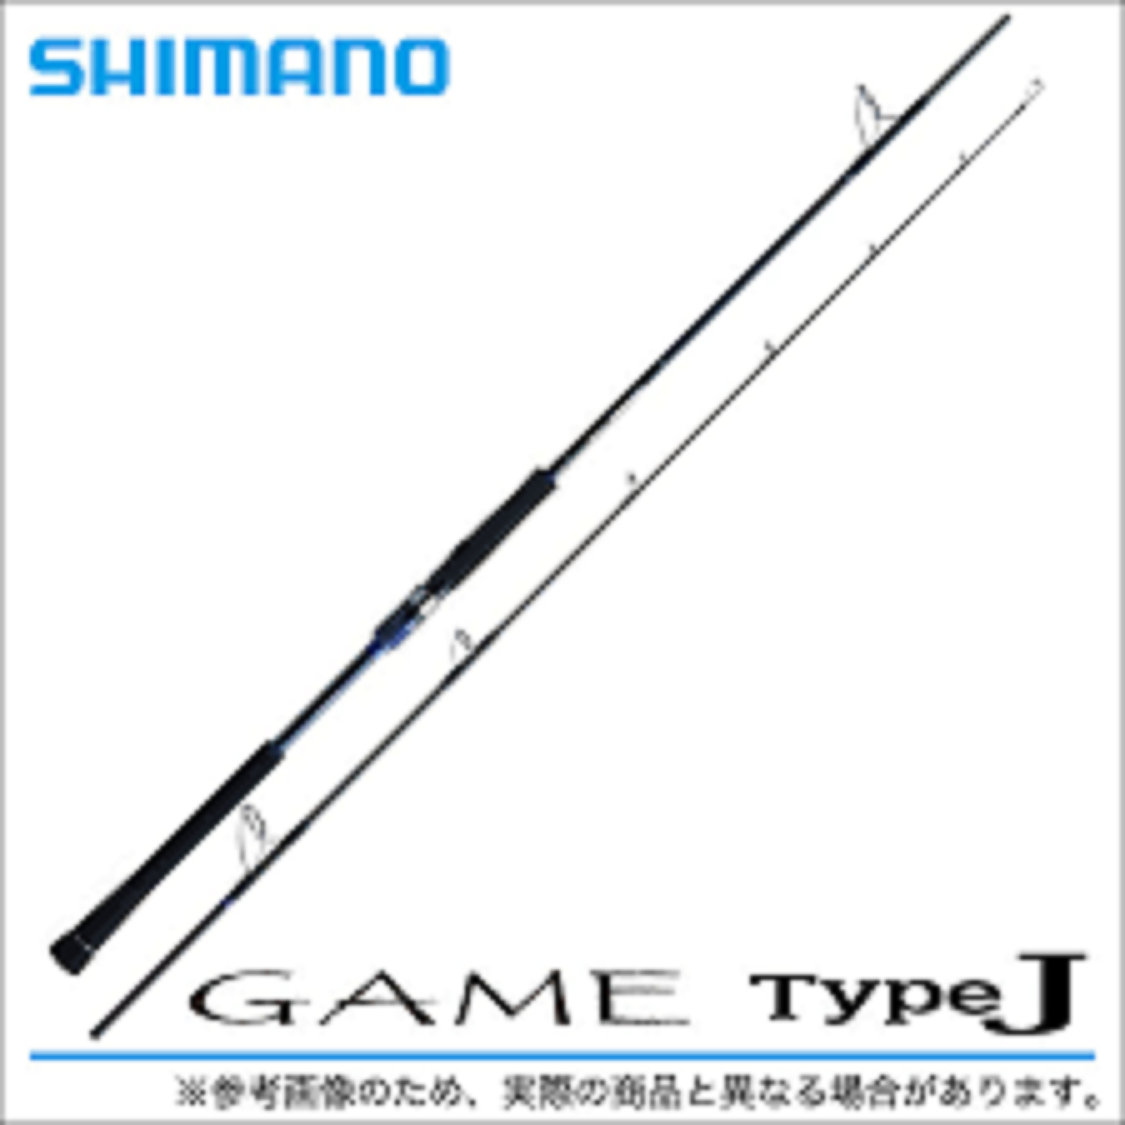 Shimano Game Type J Conventional Rod Brand Brand Brand New with Rod Bag a85568